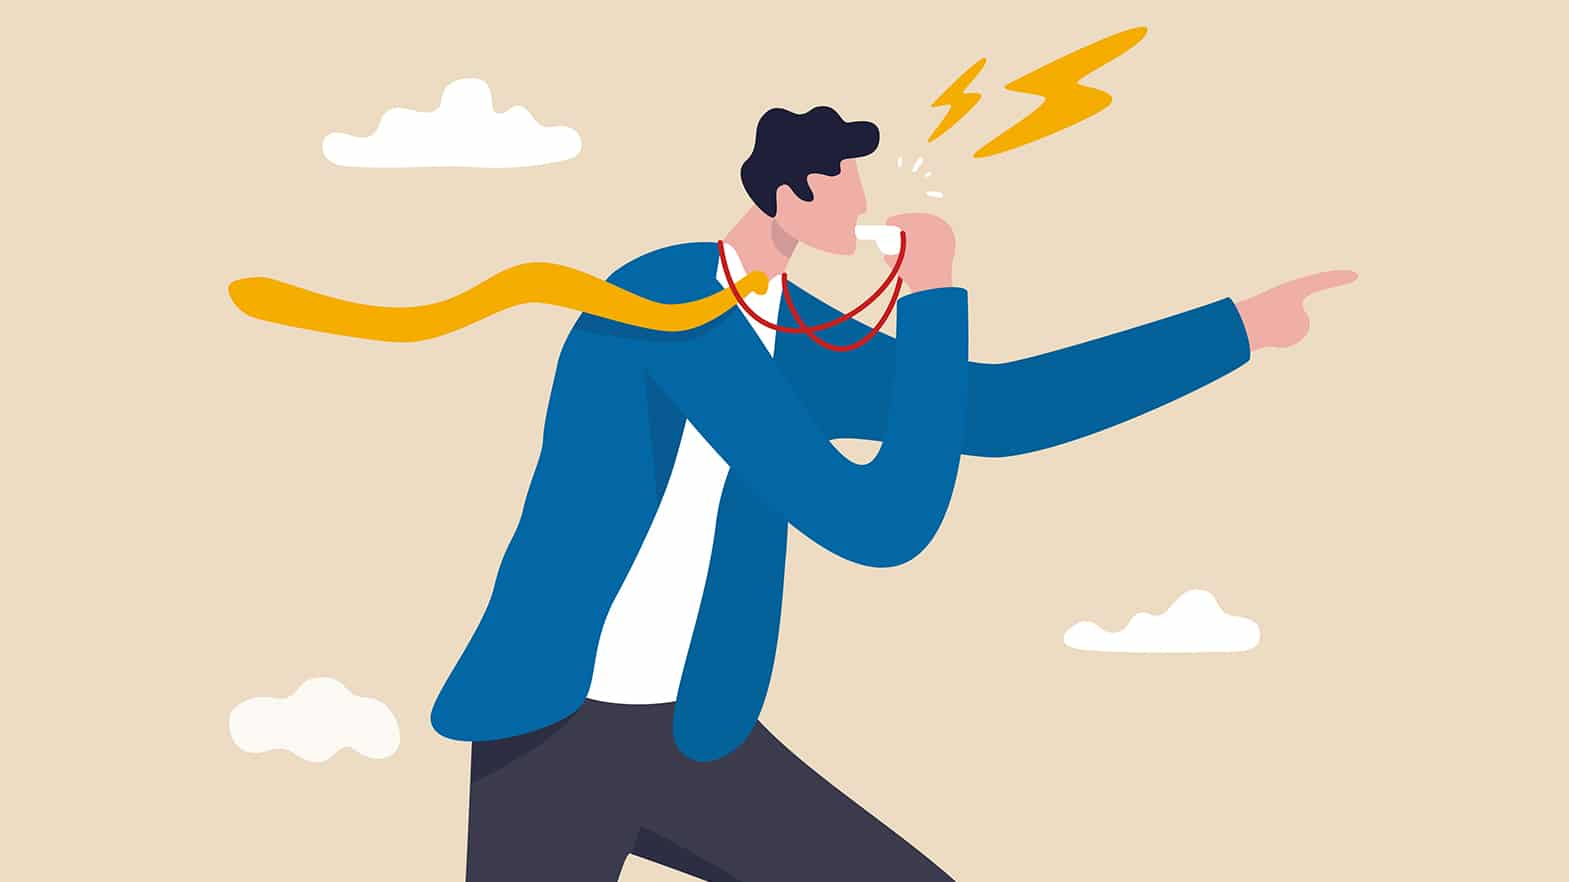 Whistleblower Rewards - Illustration of Man Blowing Whistle and Walking Fast